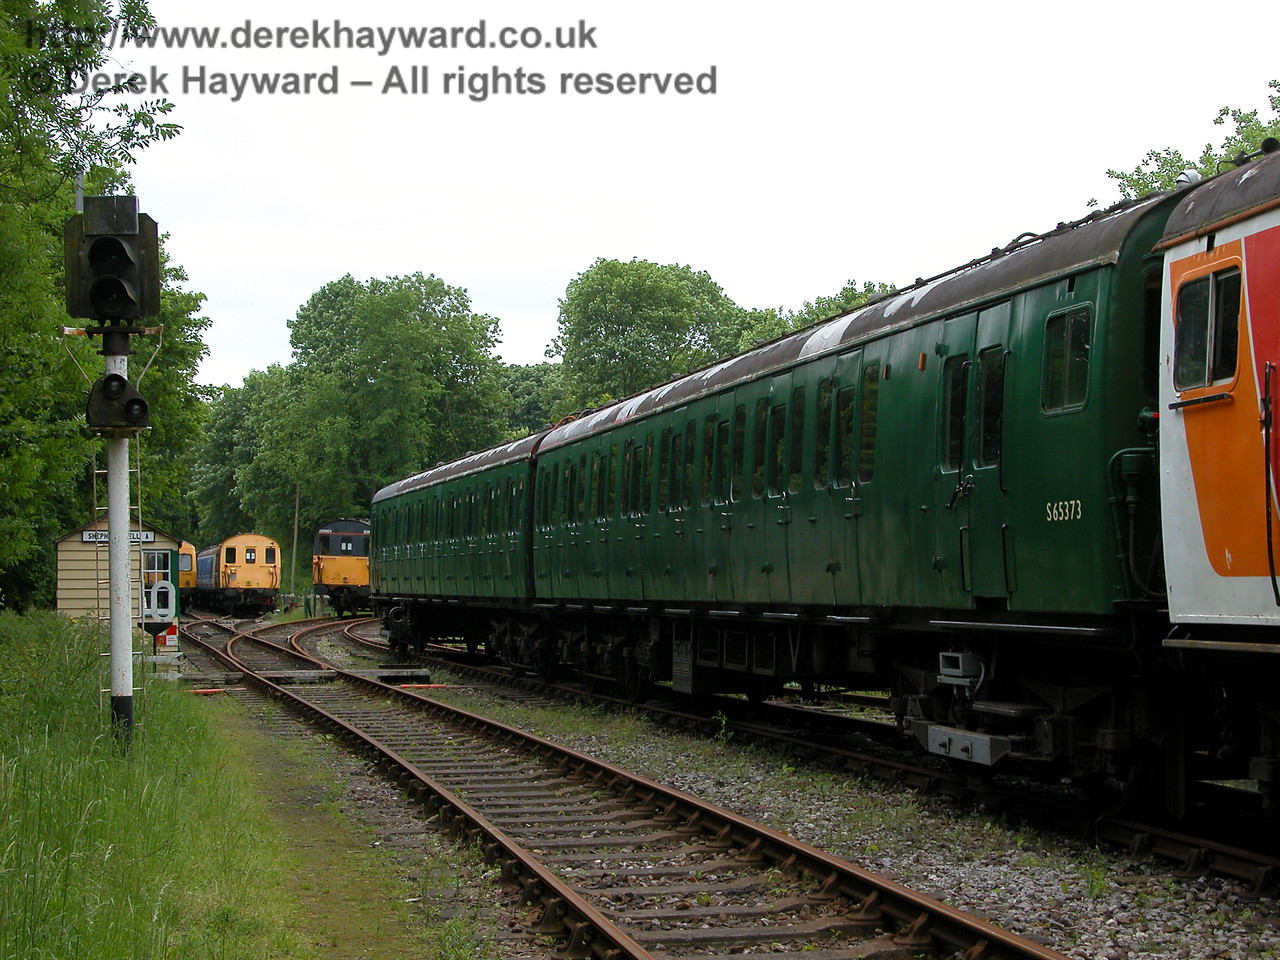 Looking west towards Shepherdswell Station with unit 5759 on the right on 06.06.2005